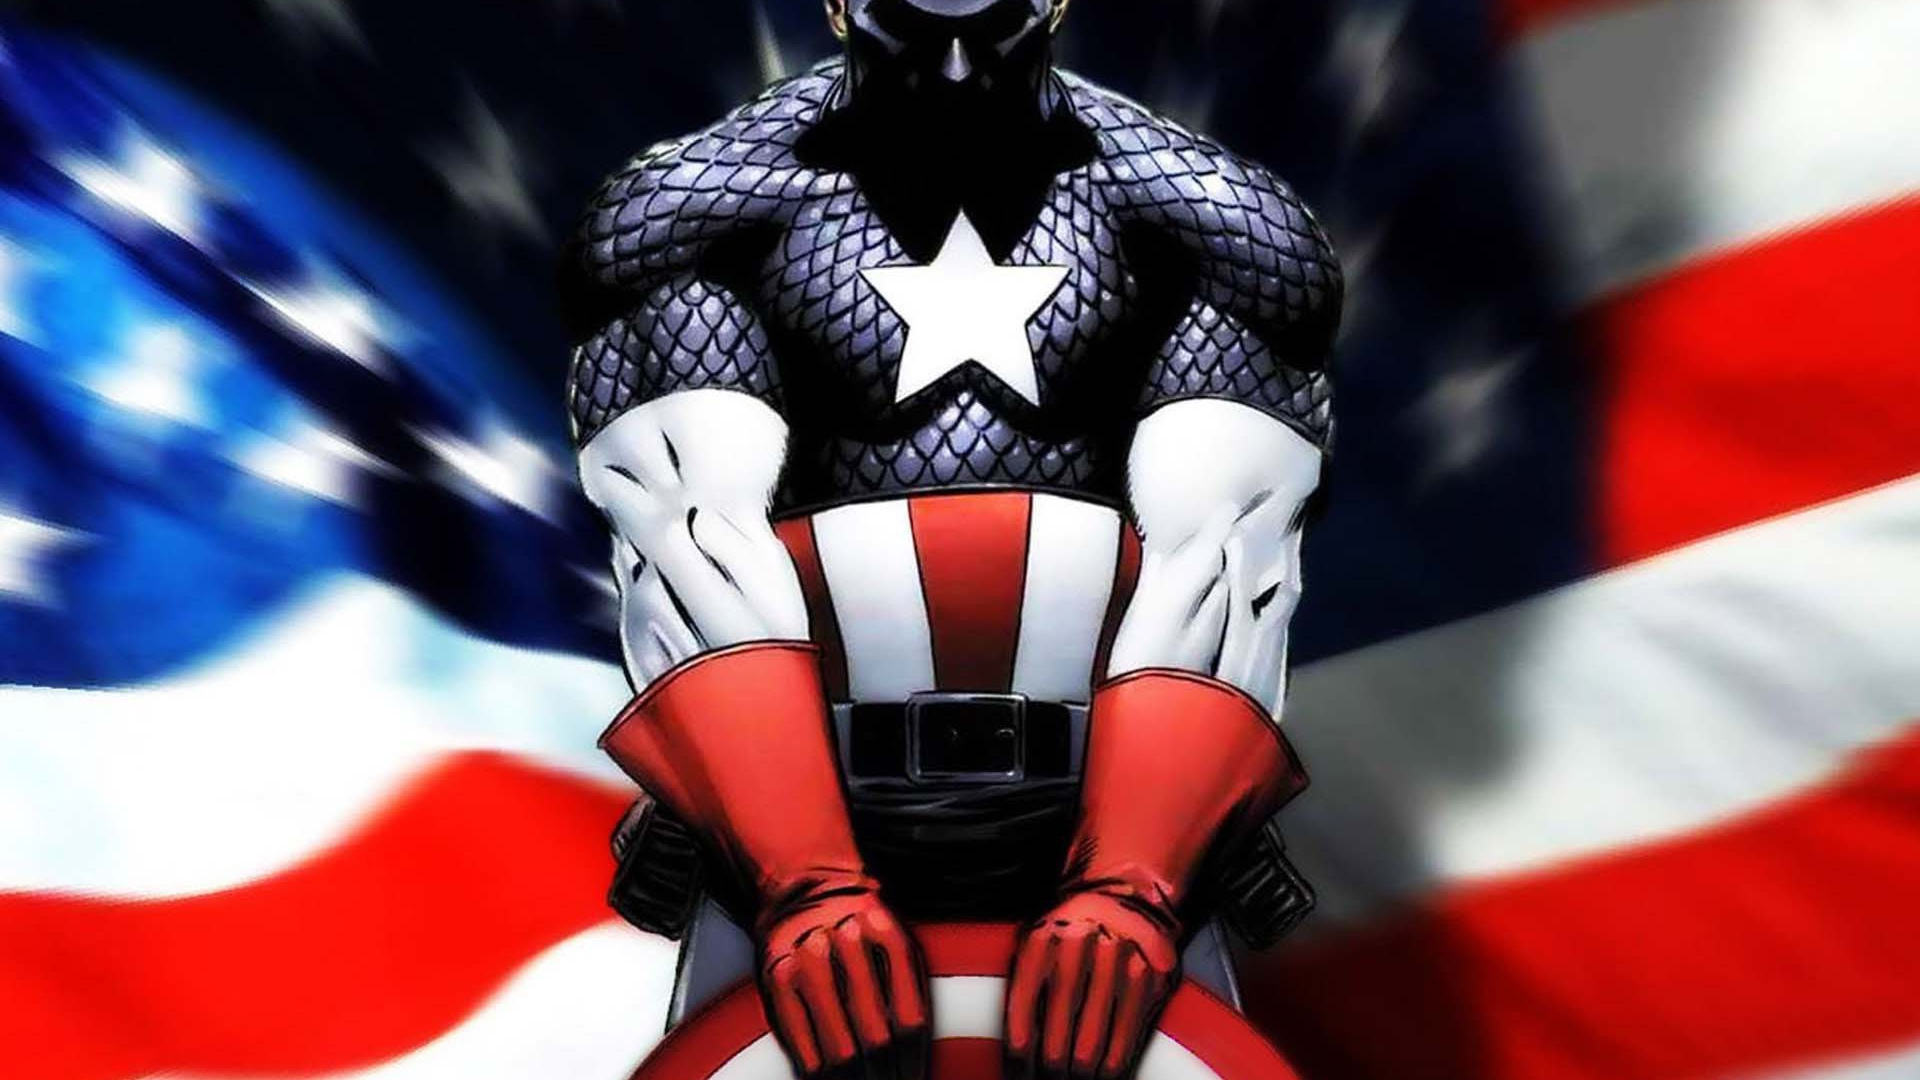 Captain America and american flag Desktop wallpapers 1920x1080 1920x1080